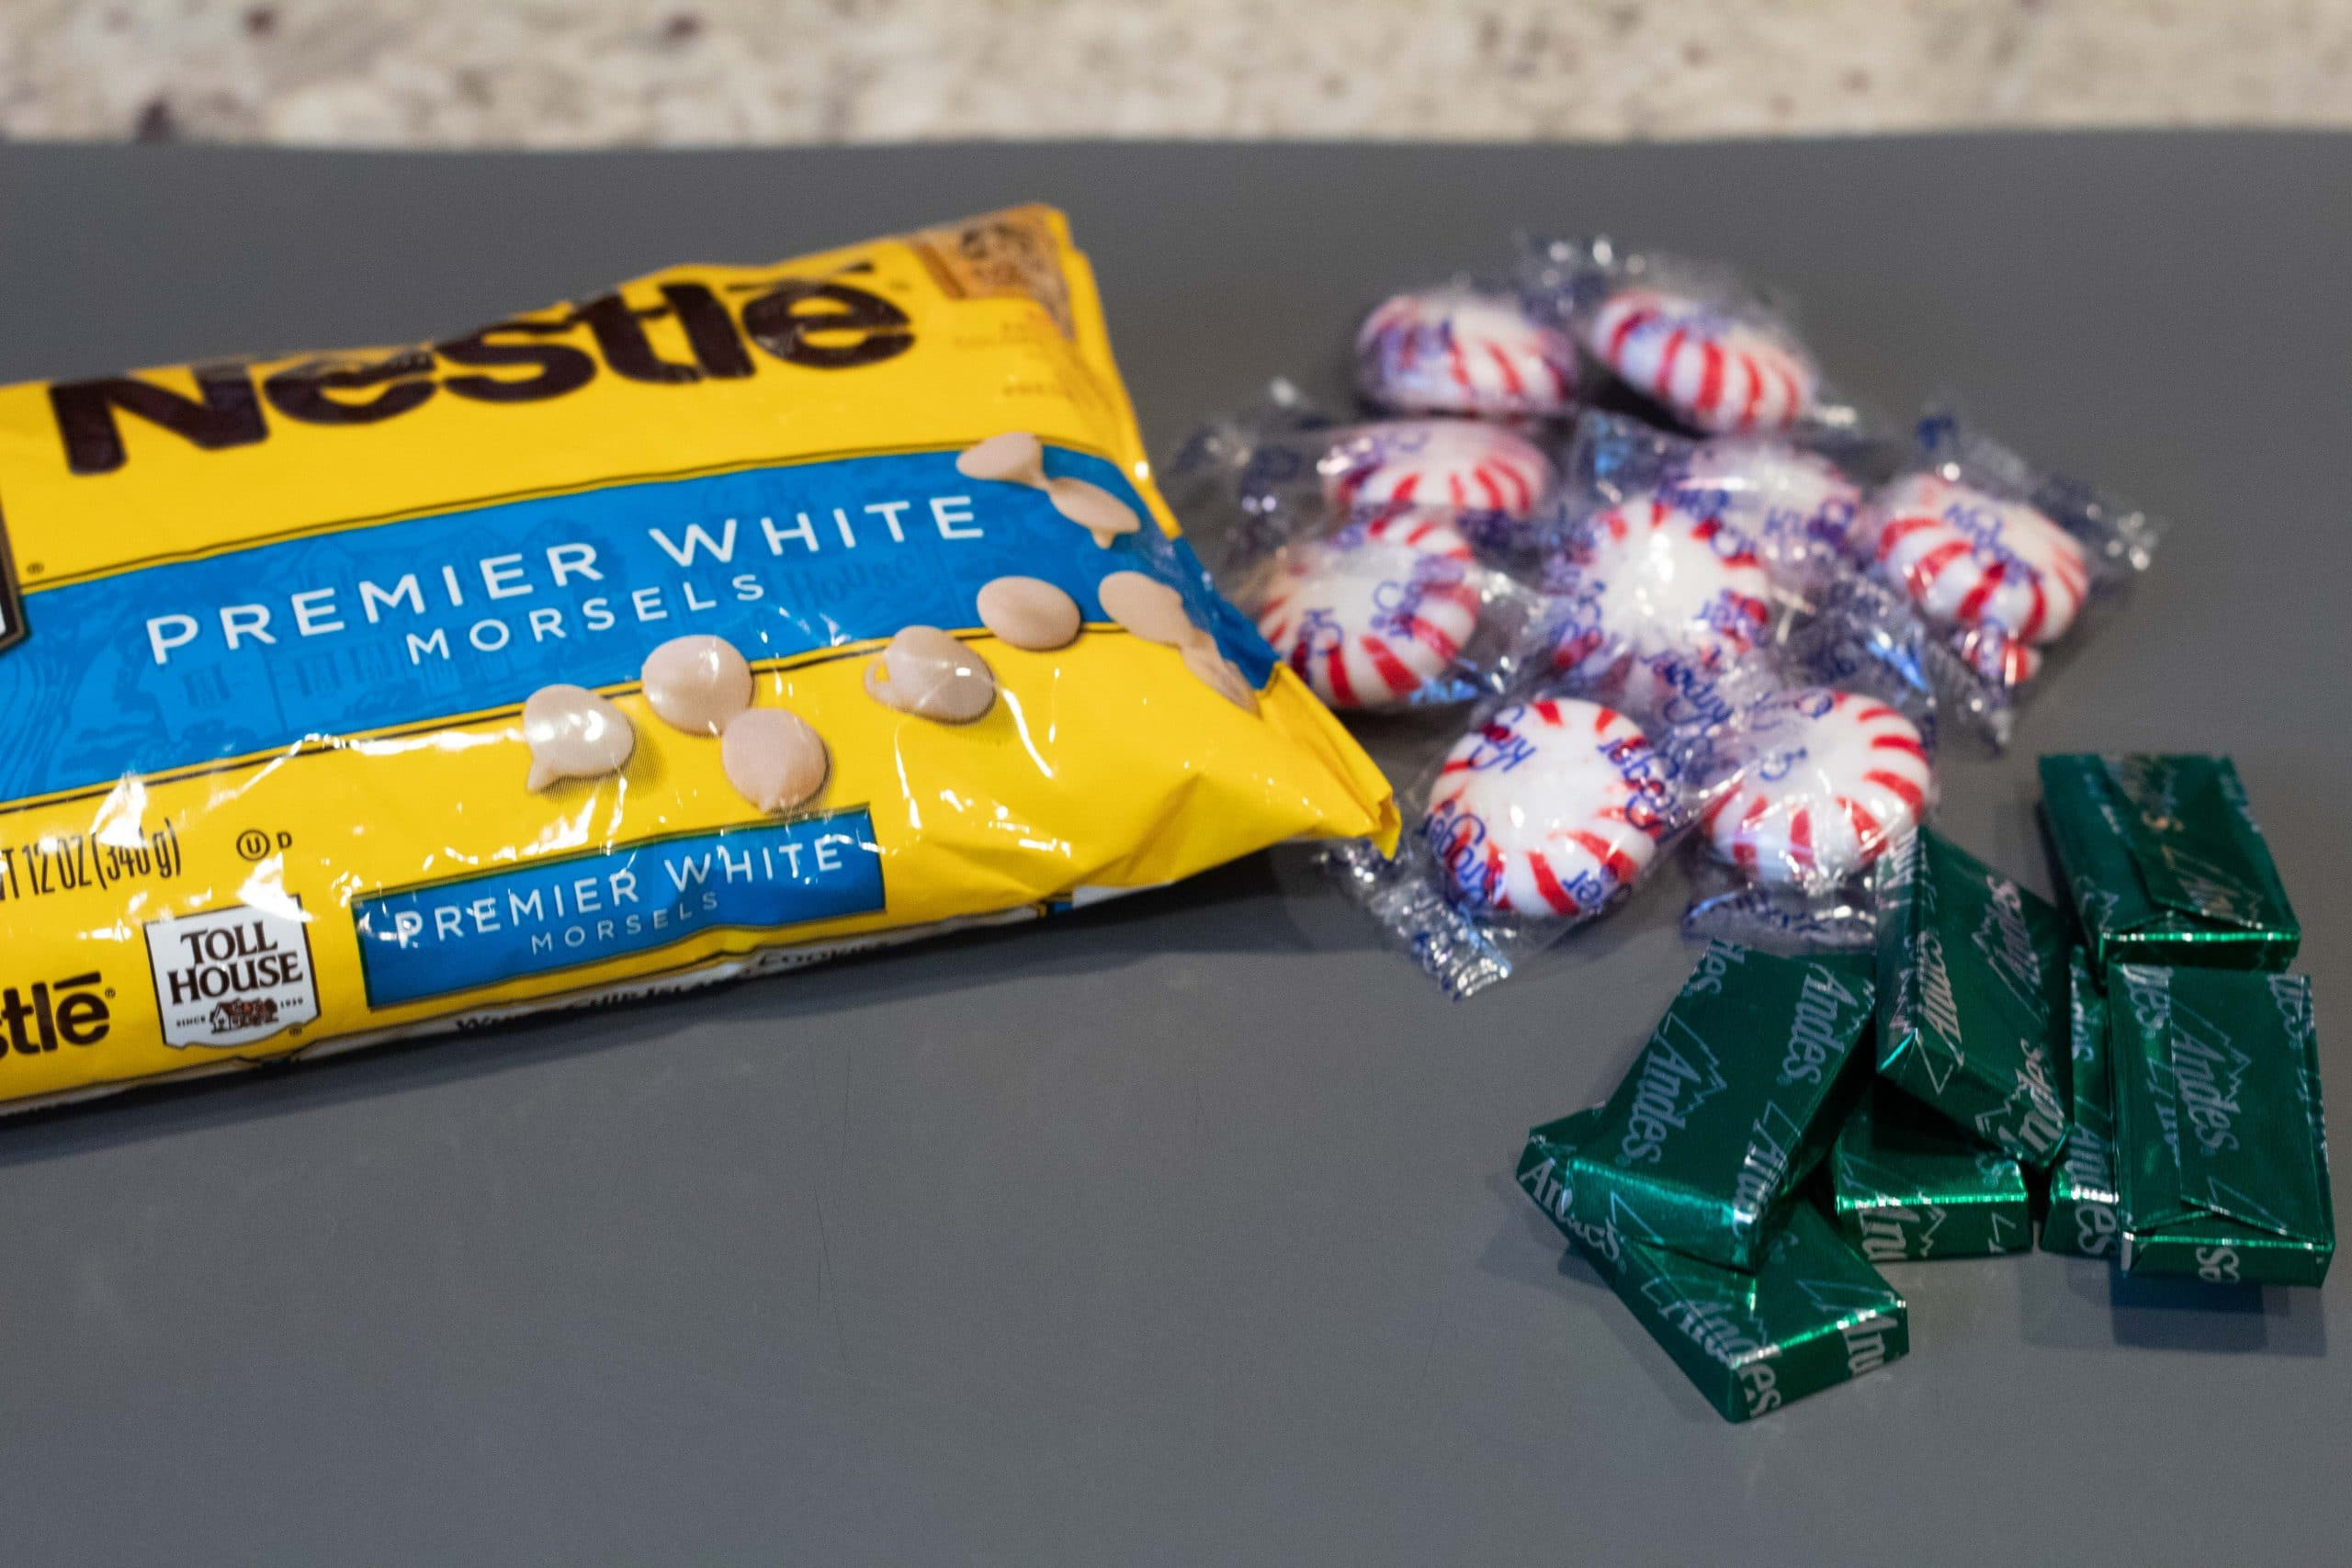 Image of white chocolate and mints.